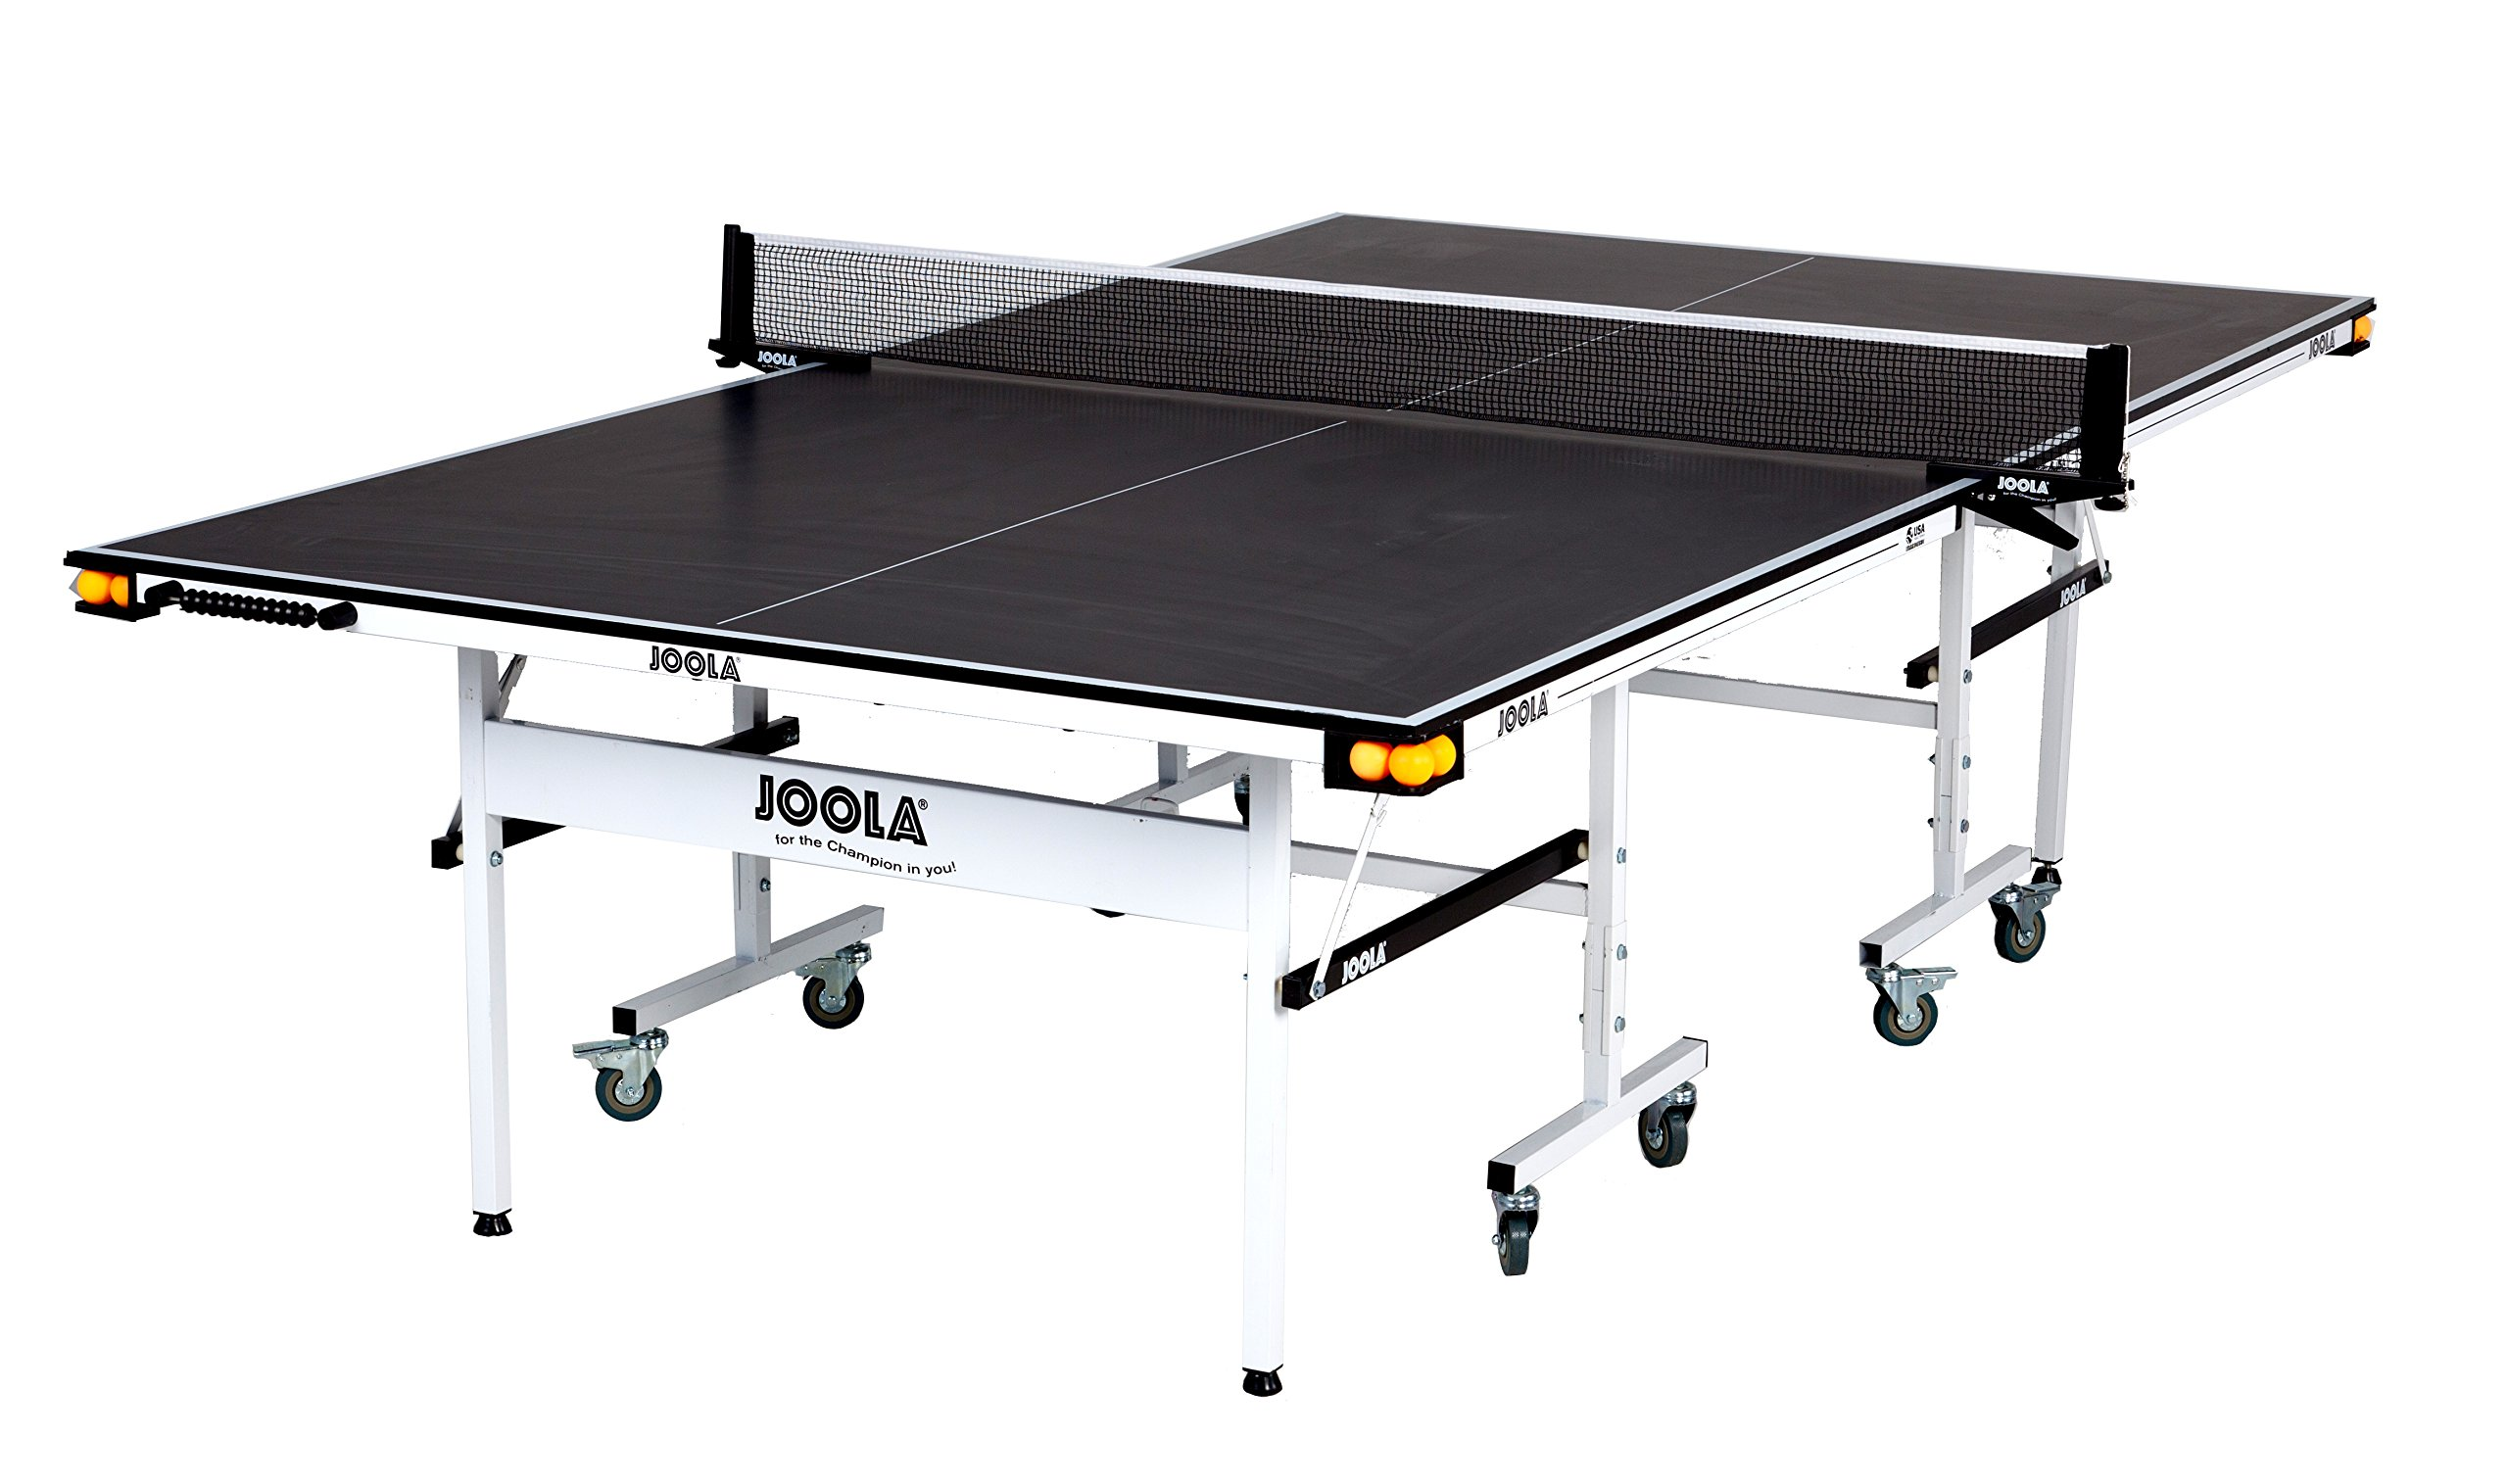 JOOLA Rally TL 300 15mm 5/8 Inch Professional Grade Table Tennis Table with Net Set, Ball Holders and Abacus Scorer by JOOLA